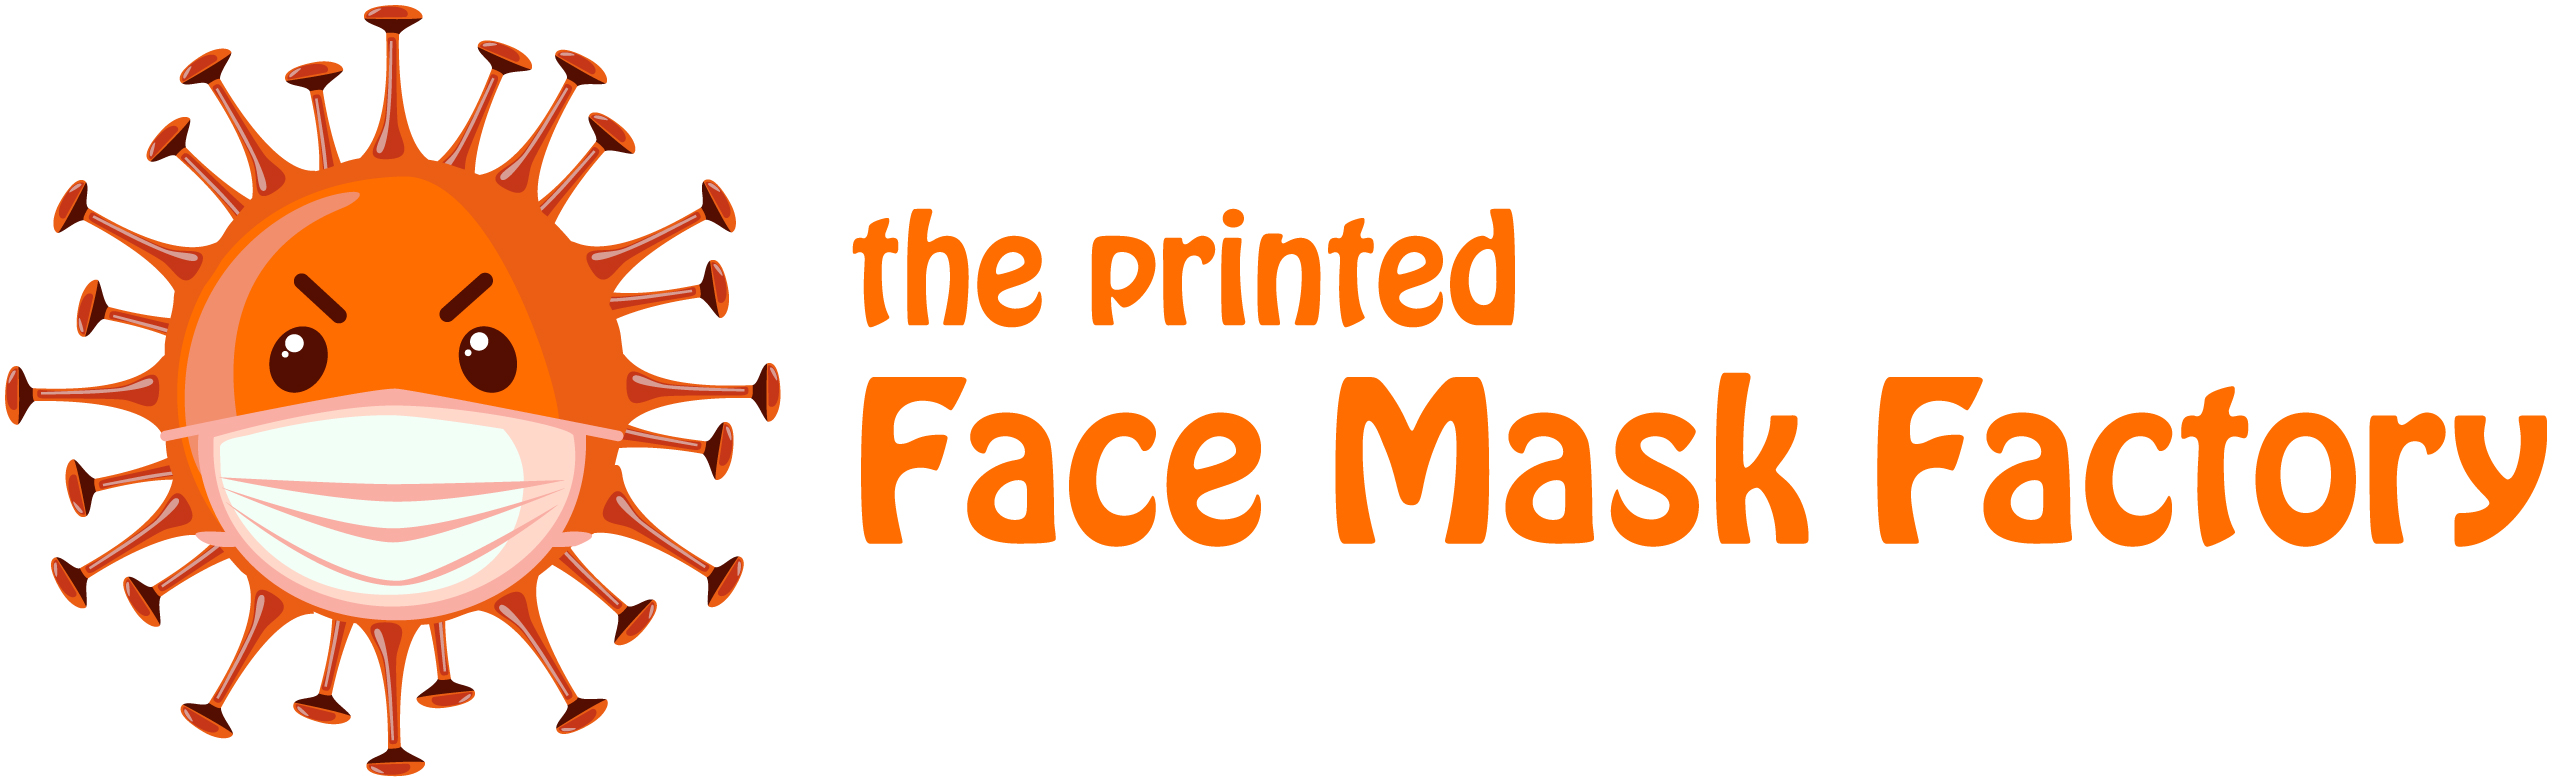 The Printed Face Mask Factory Logo